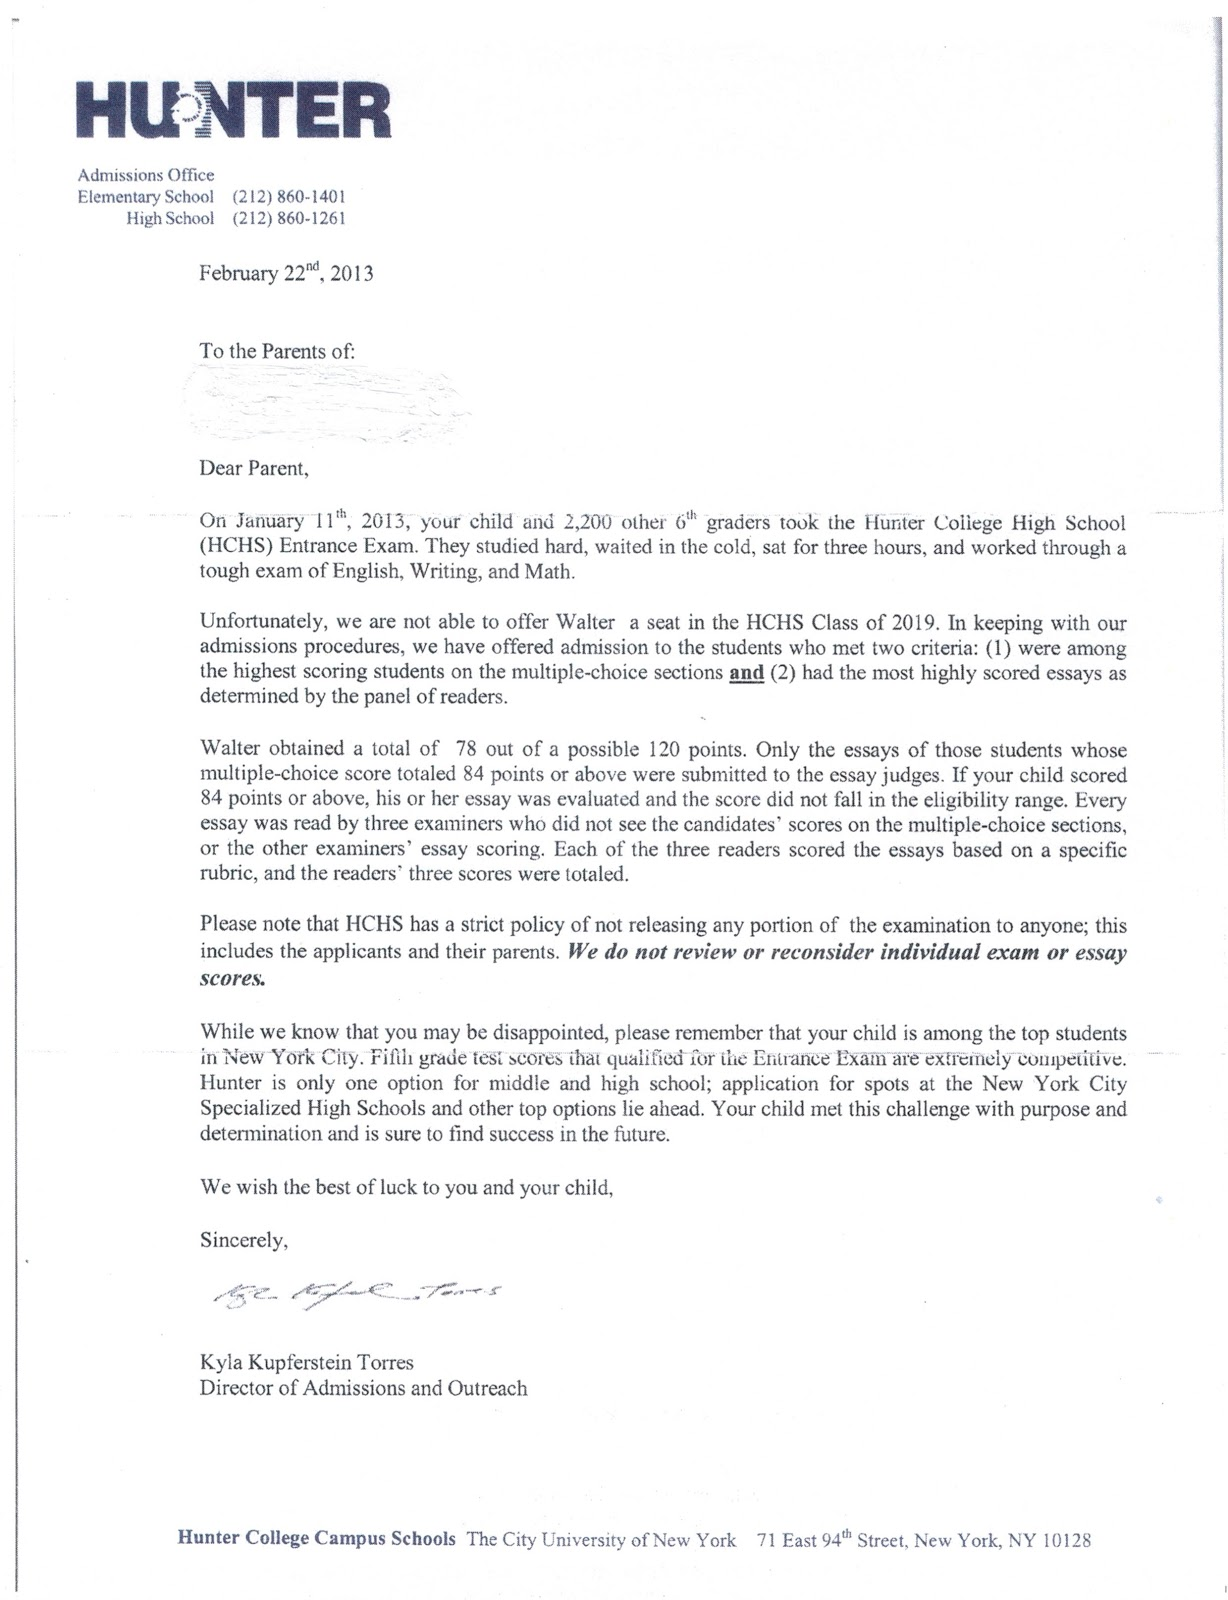 kweller prep blog nyc middle school high school and college hunter rejection letter